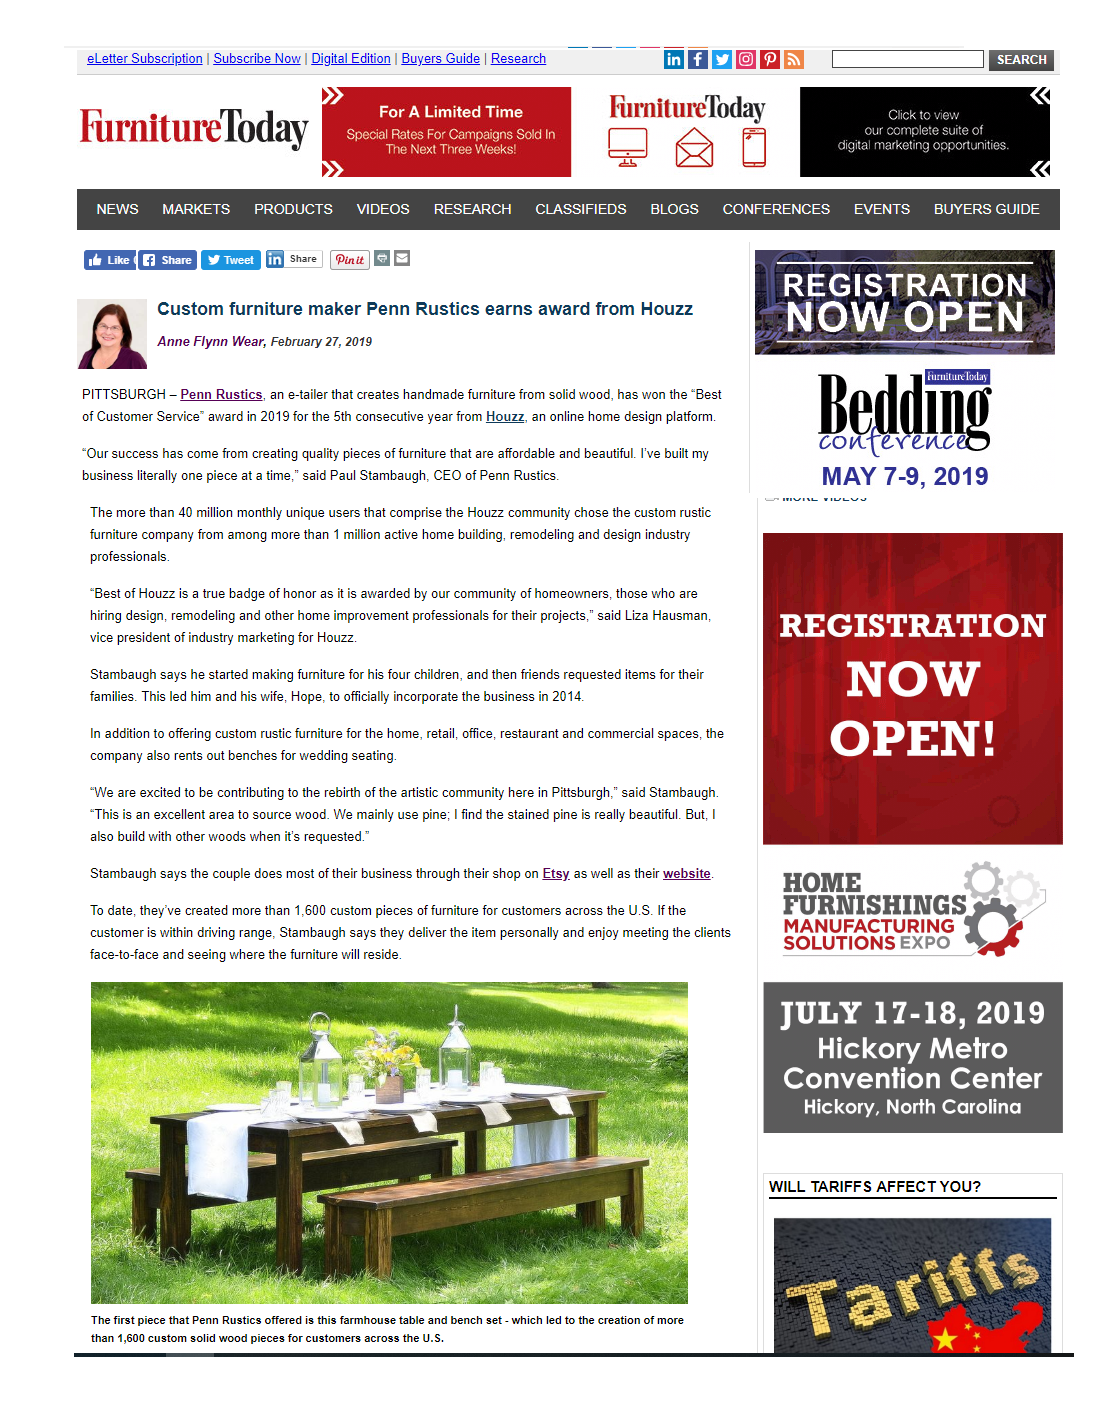 Penn Rustics_Furniture Today Article_2019_02_27.png